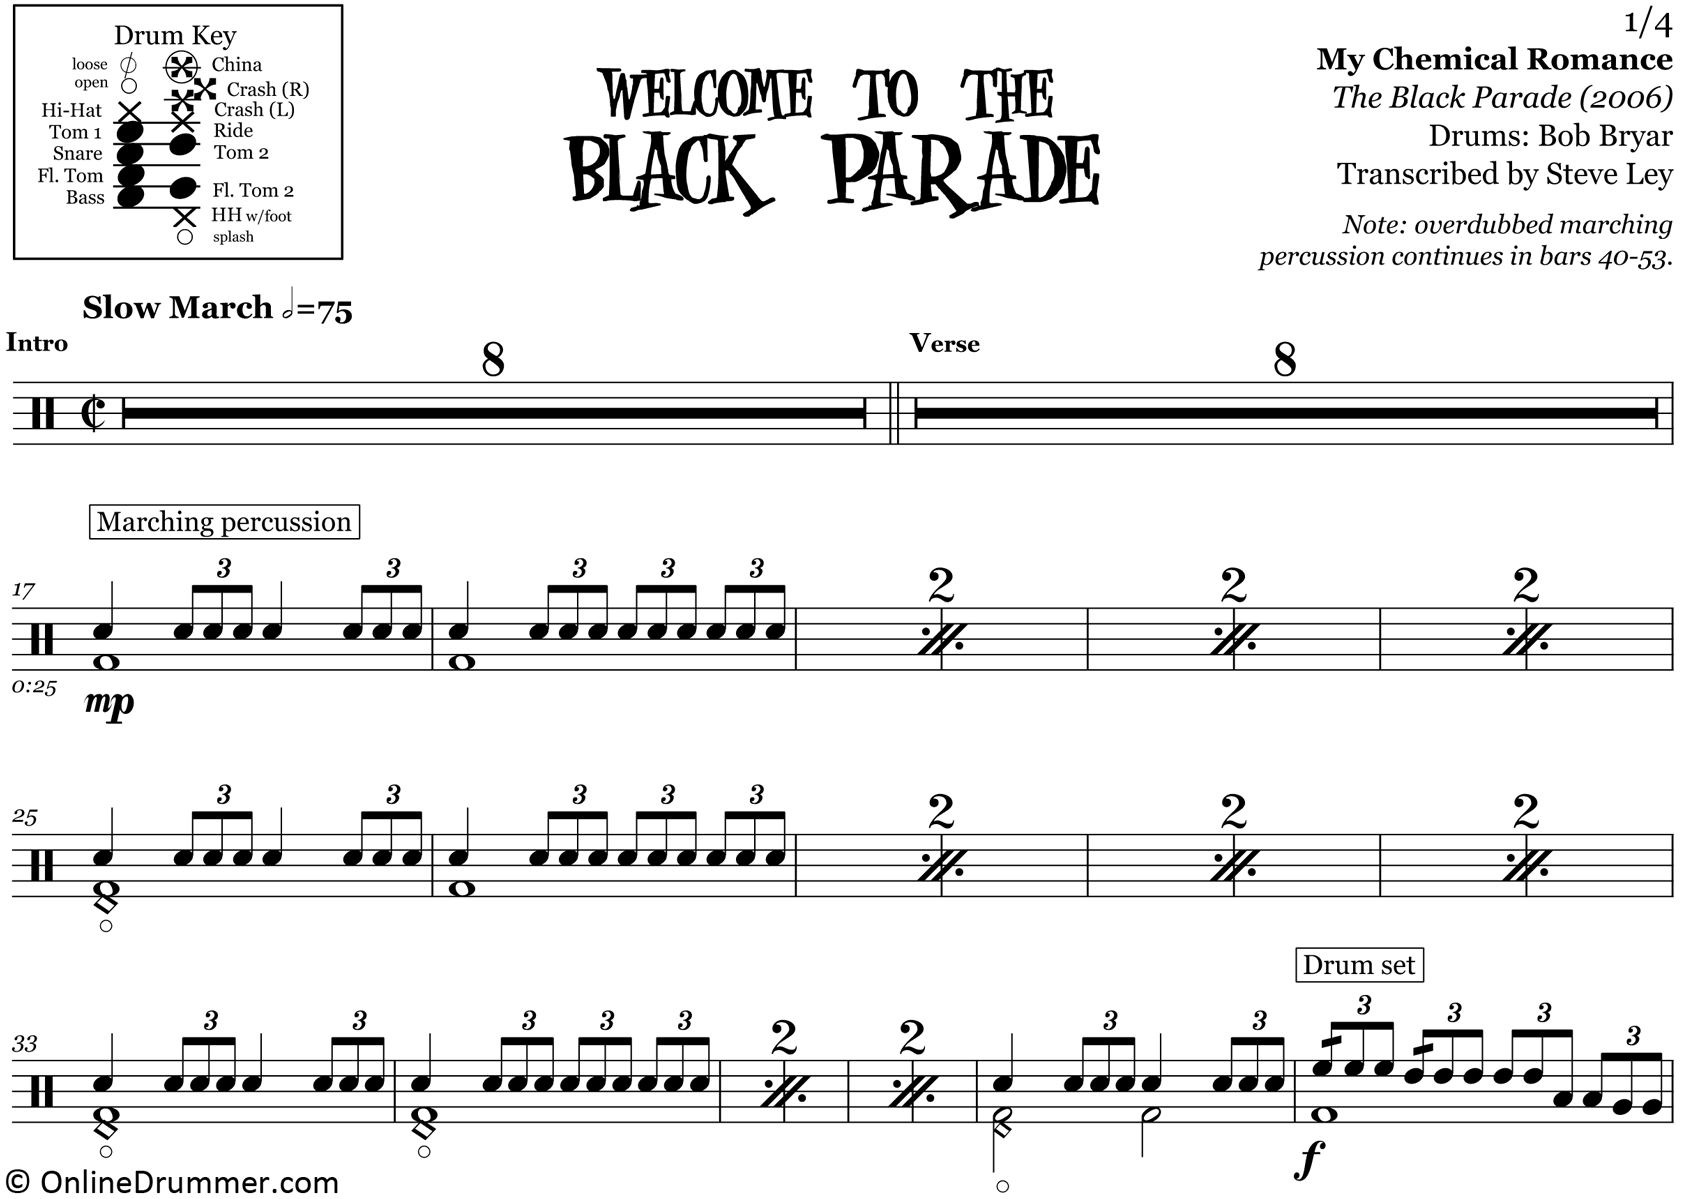 Welcome to the Black Parade - My Chemical Romance - Drum Sheet Music